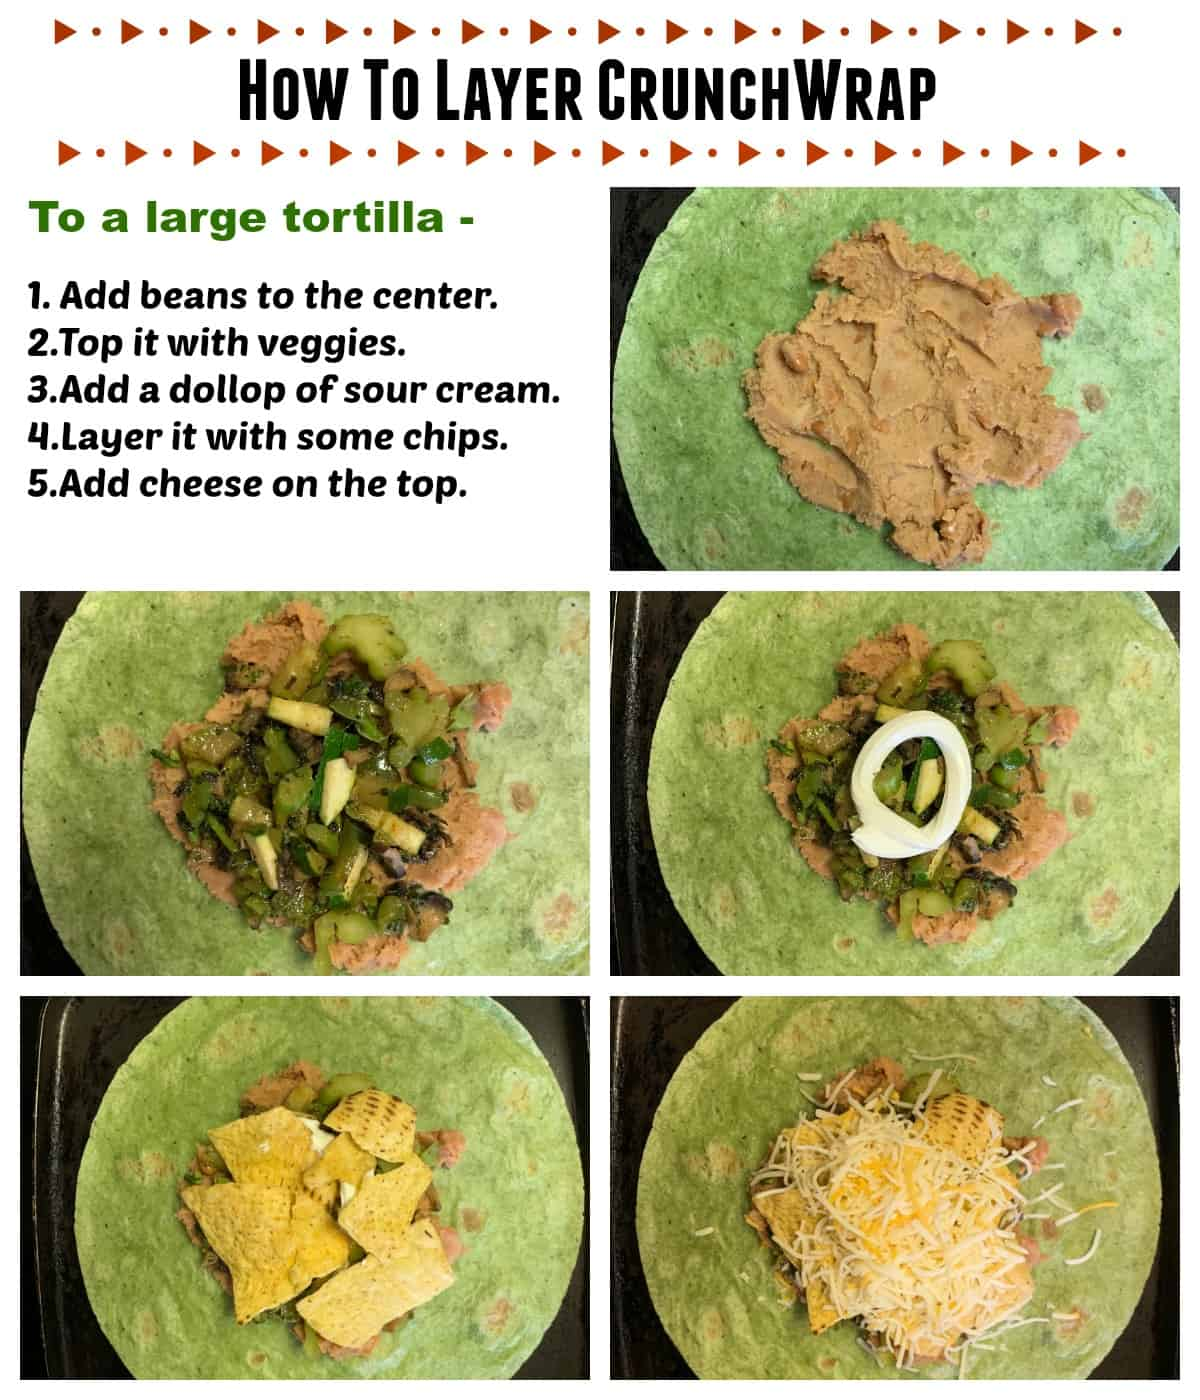 Layering the tortilla with beans and veggies